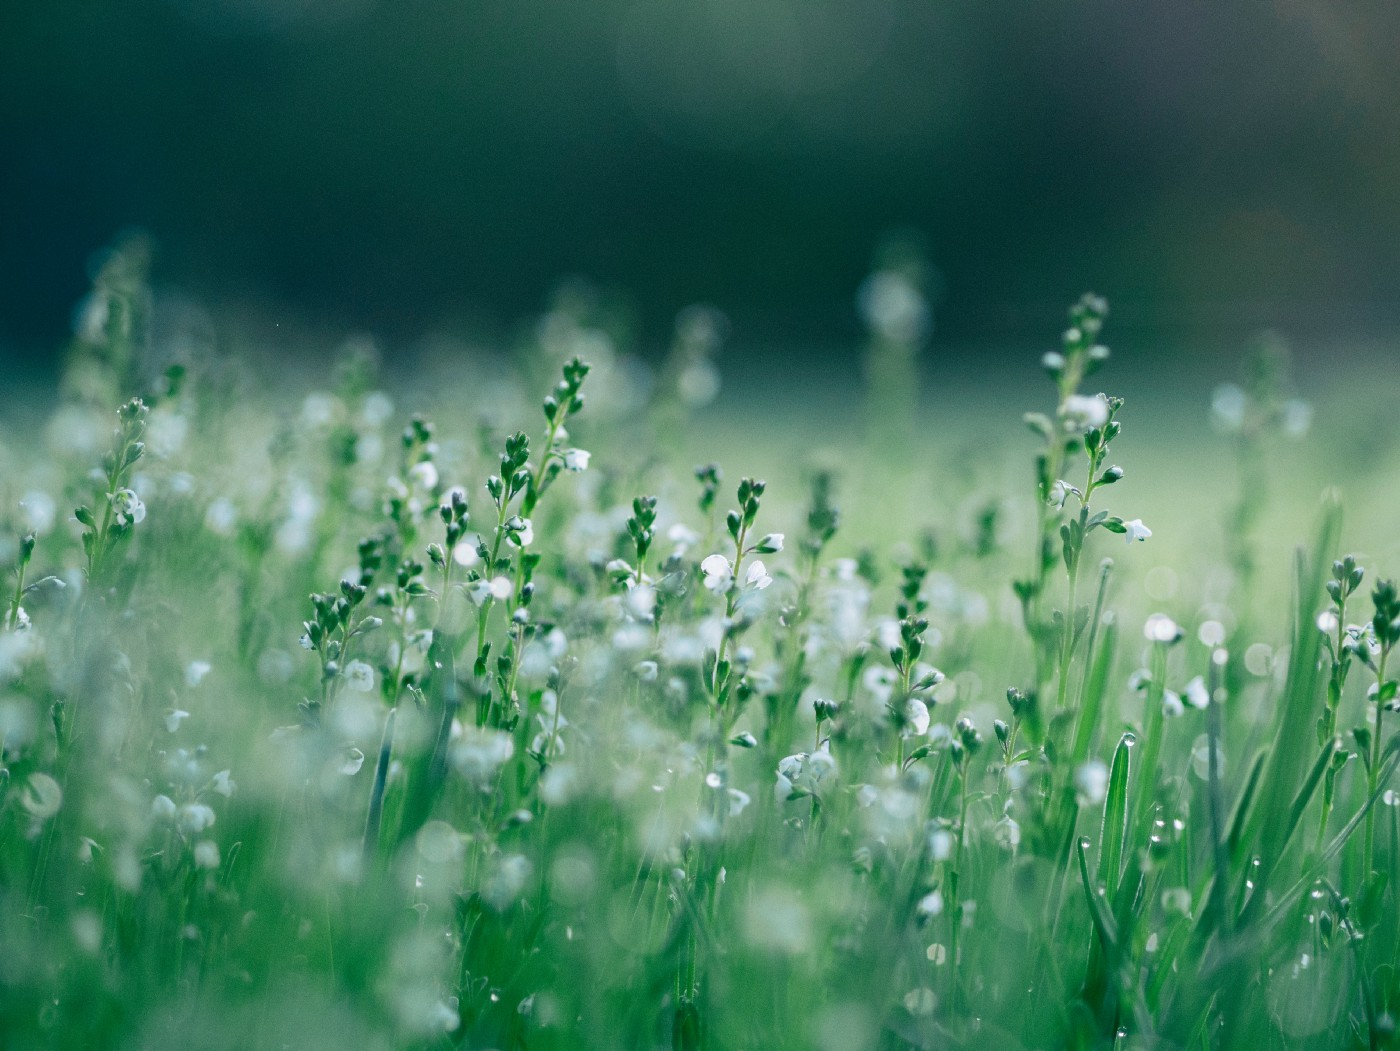 Green grassy field with little white flowers